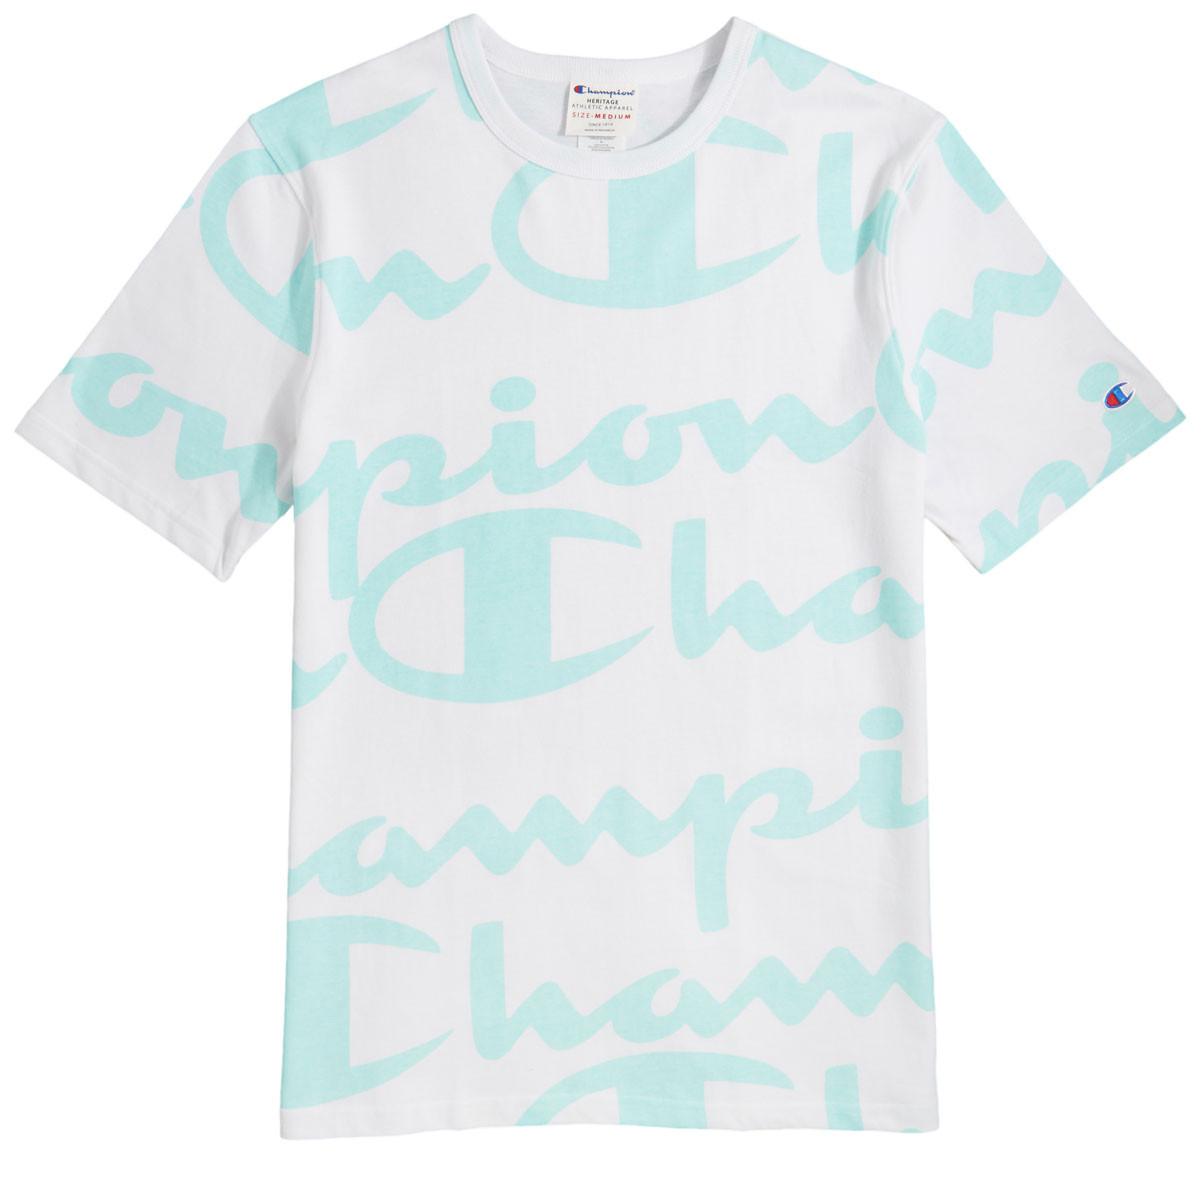 fda3115daf9b Champion Heritage All Over Giant Script T-Shirt - White Waterfall